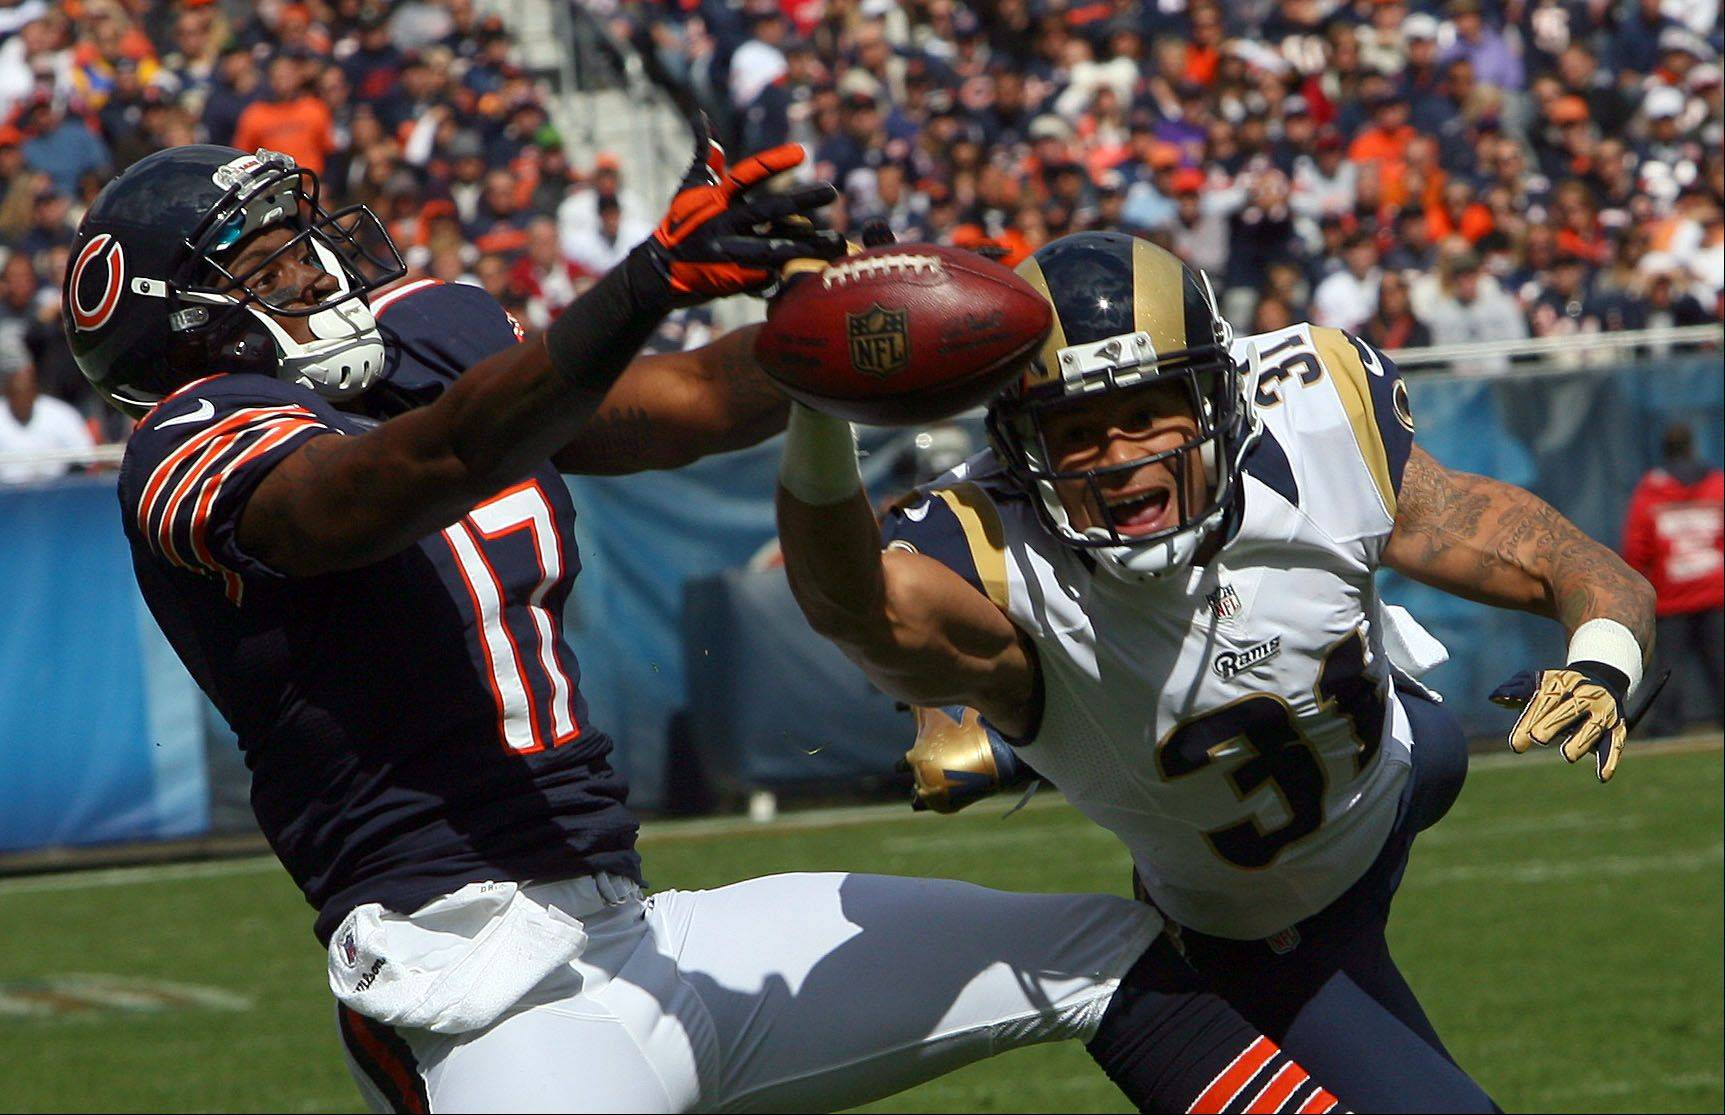 Chicago Bears wide receiver Alshon Jeffery goes for a ball with St. Louis Rams defensive back Cortland Finnegan in the first half against the St. Louis Rams Sunday at Soldier Field in Chicago. The pass was incomplete.